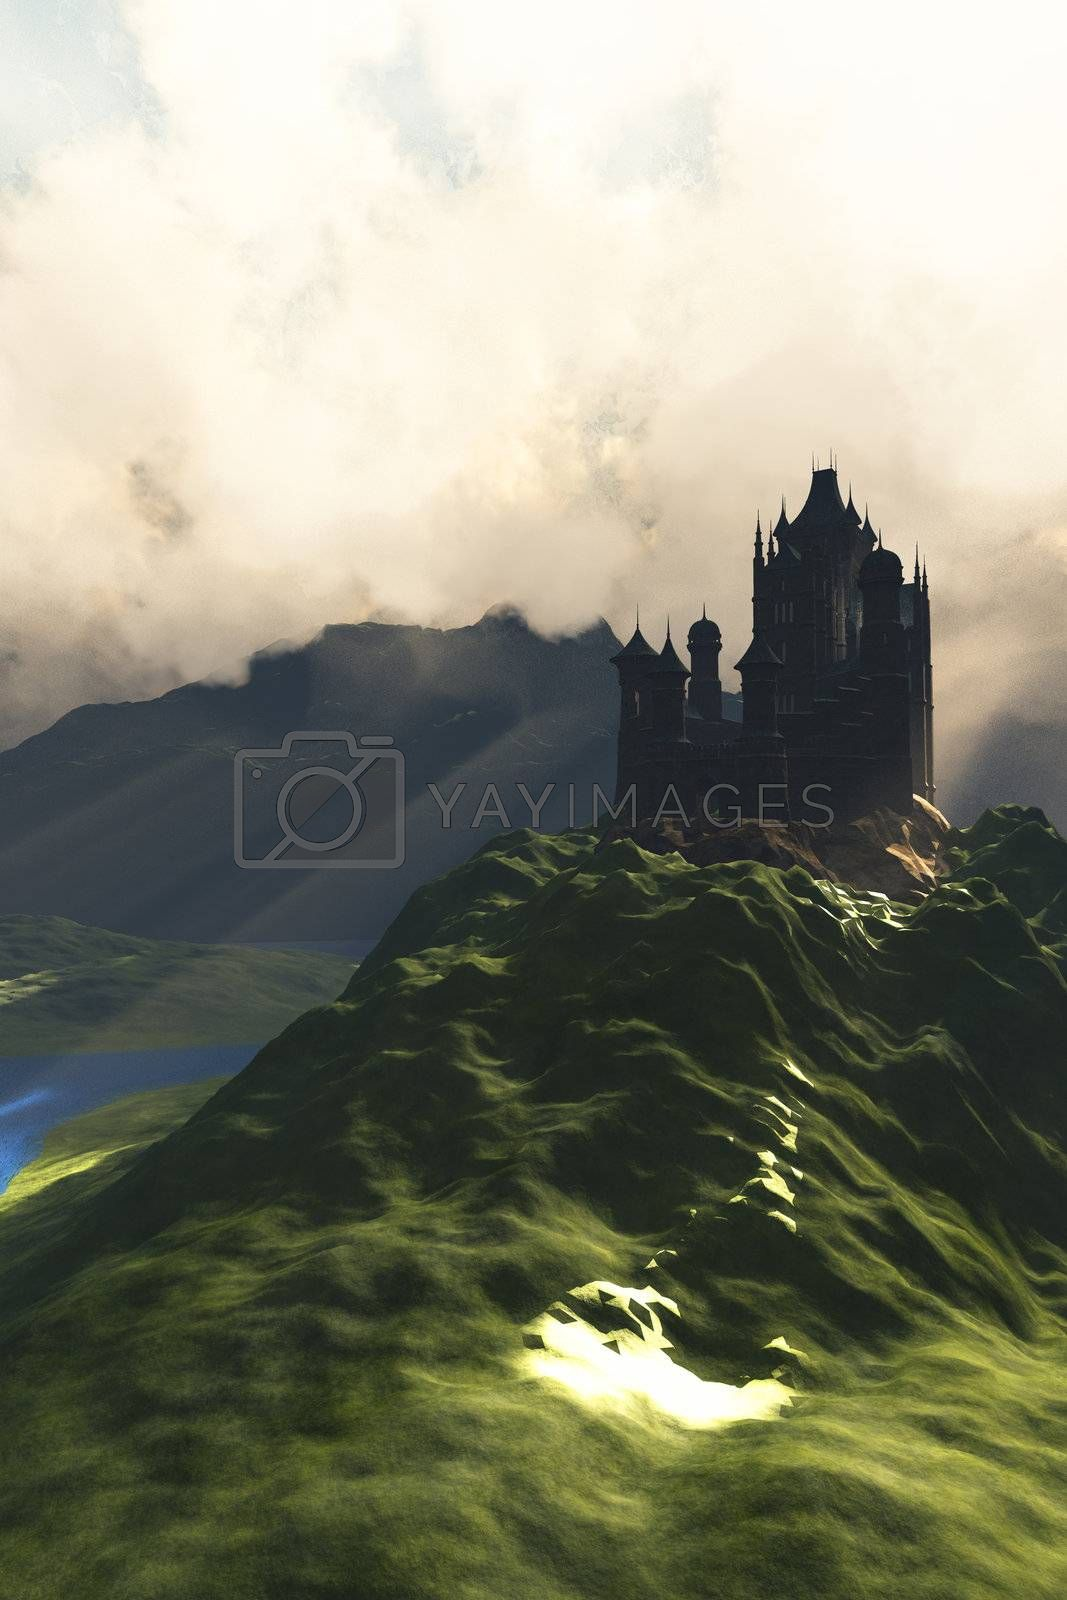 Royalty free image of CASTLE IN THE MIST by Catmando